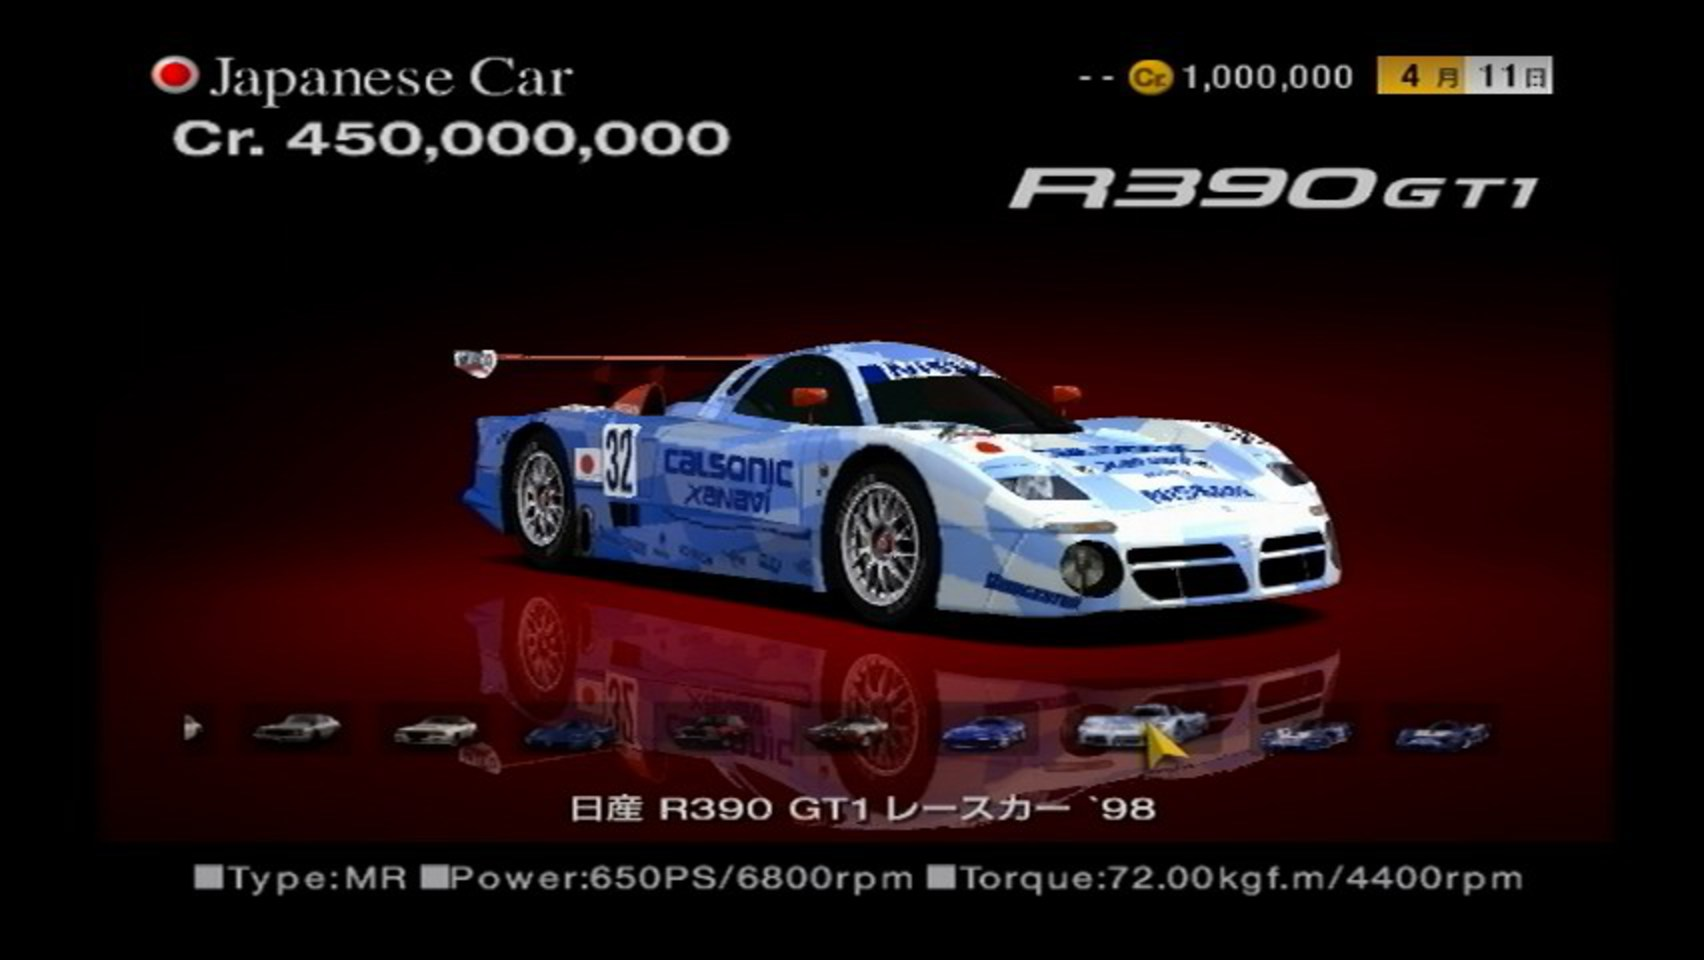 Nissan R390 GT-1 - cars catalog, specs, features, photos, videos, review,